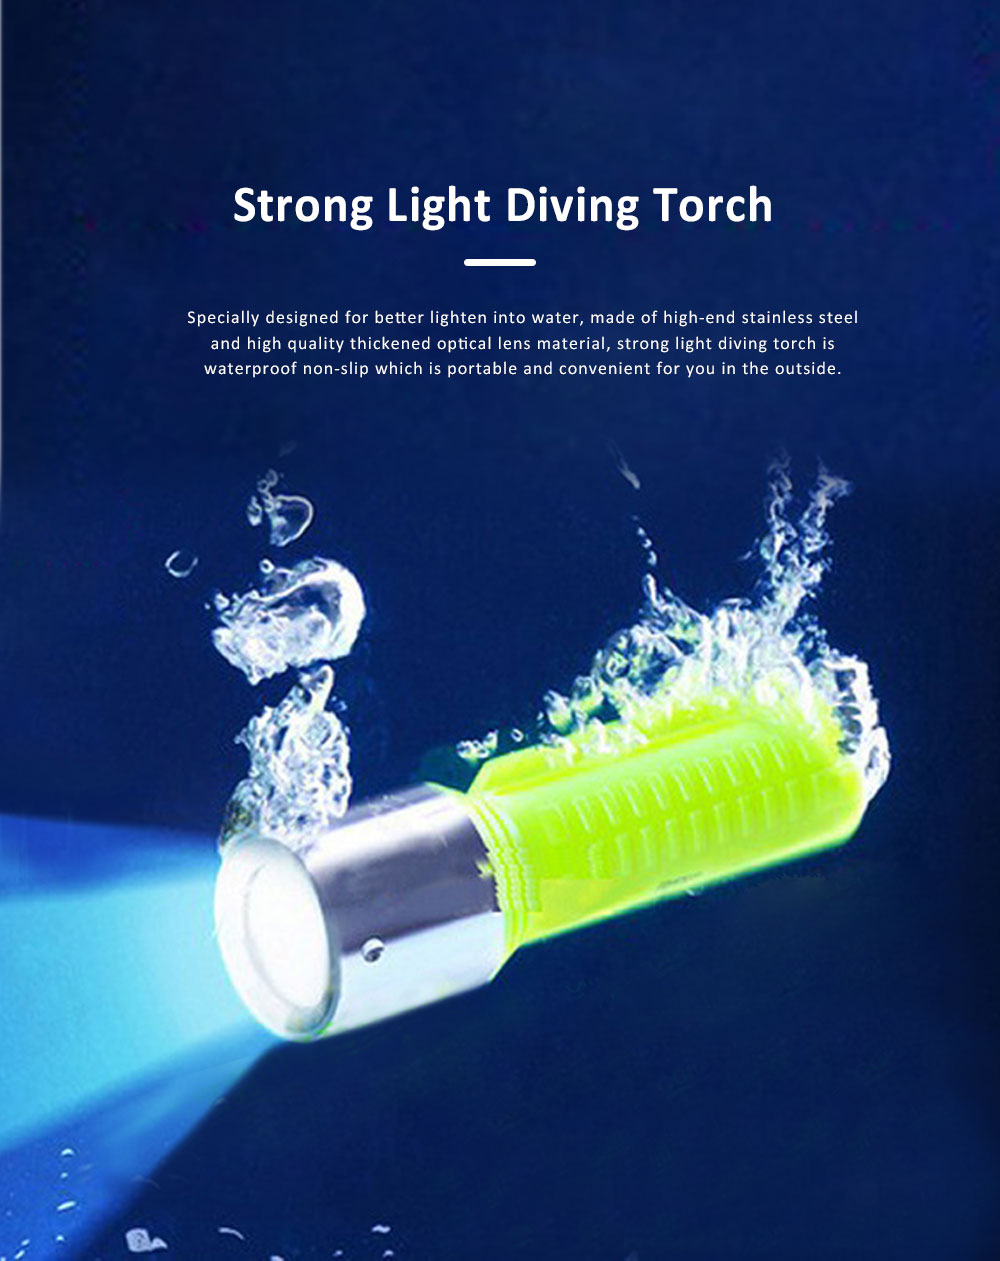 Non-slip & Waterproof Strong Light Diving Torch with High-grade Wrist Rope & Stainless Steel Lamp Holder 0